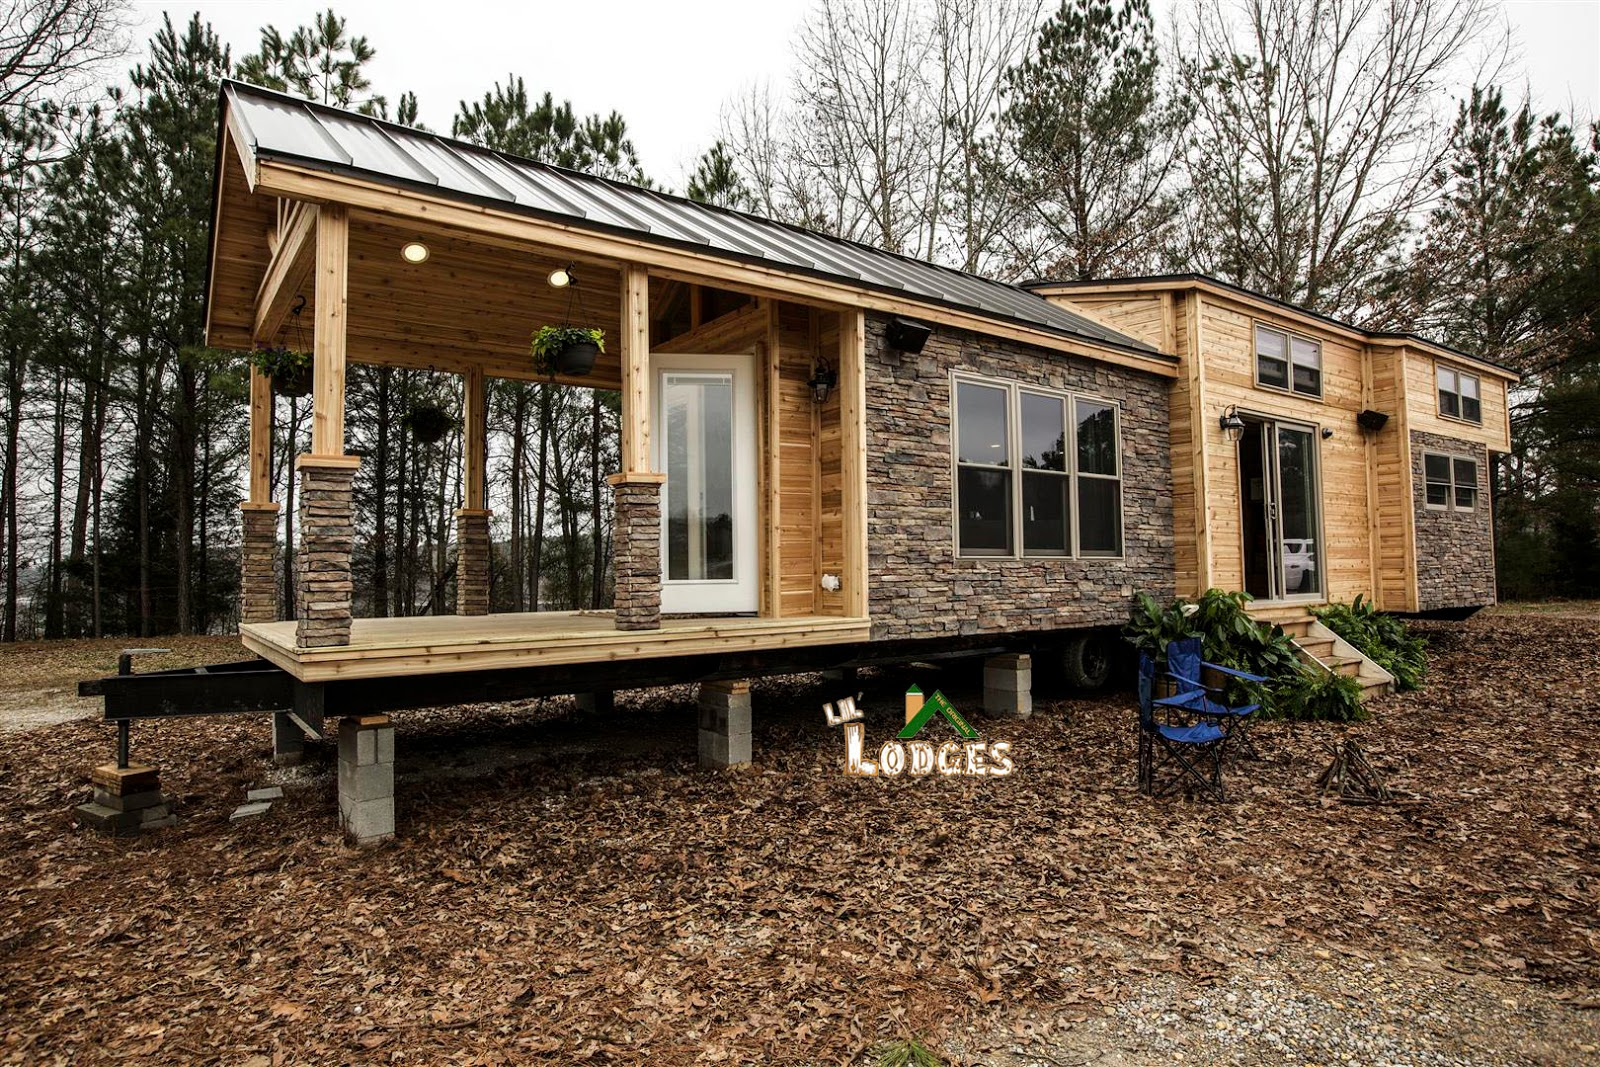 Tiny house town a cozy rv tiny house in cobleskill ny for Large family living in small house